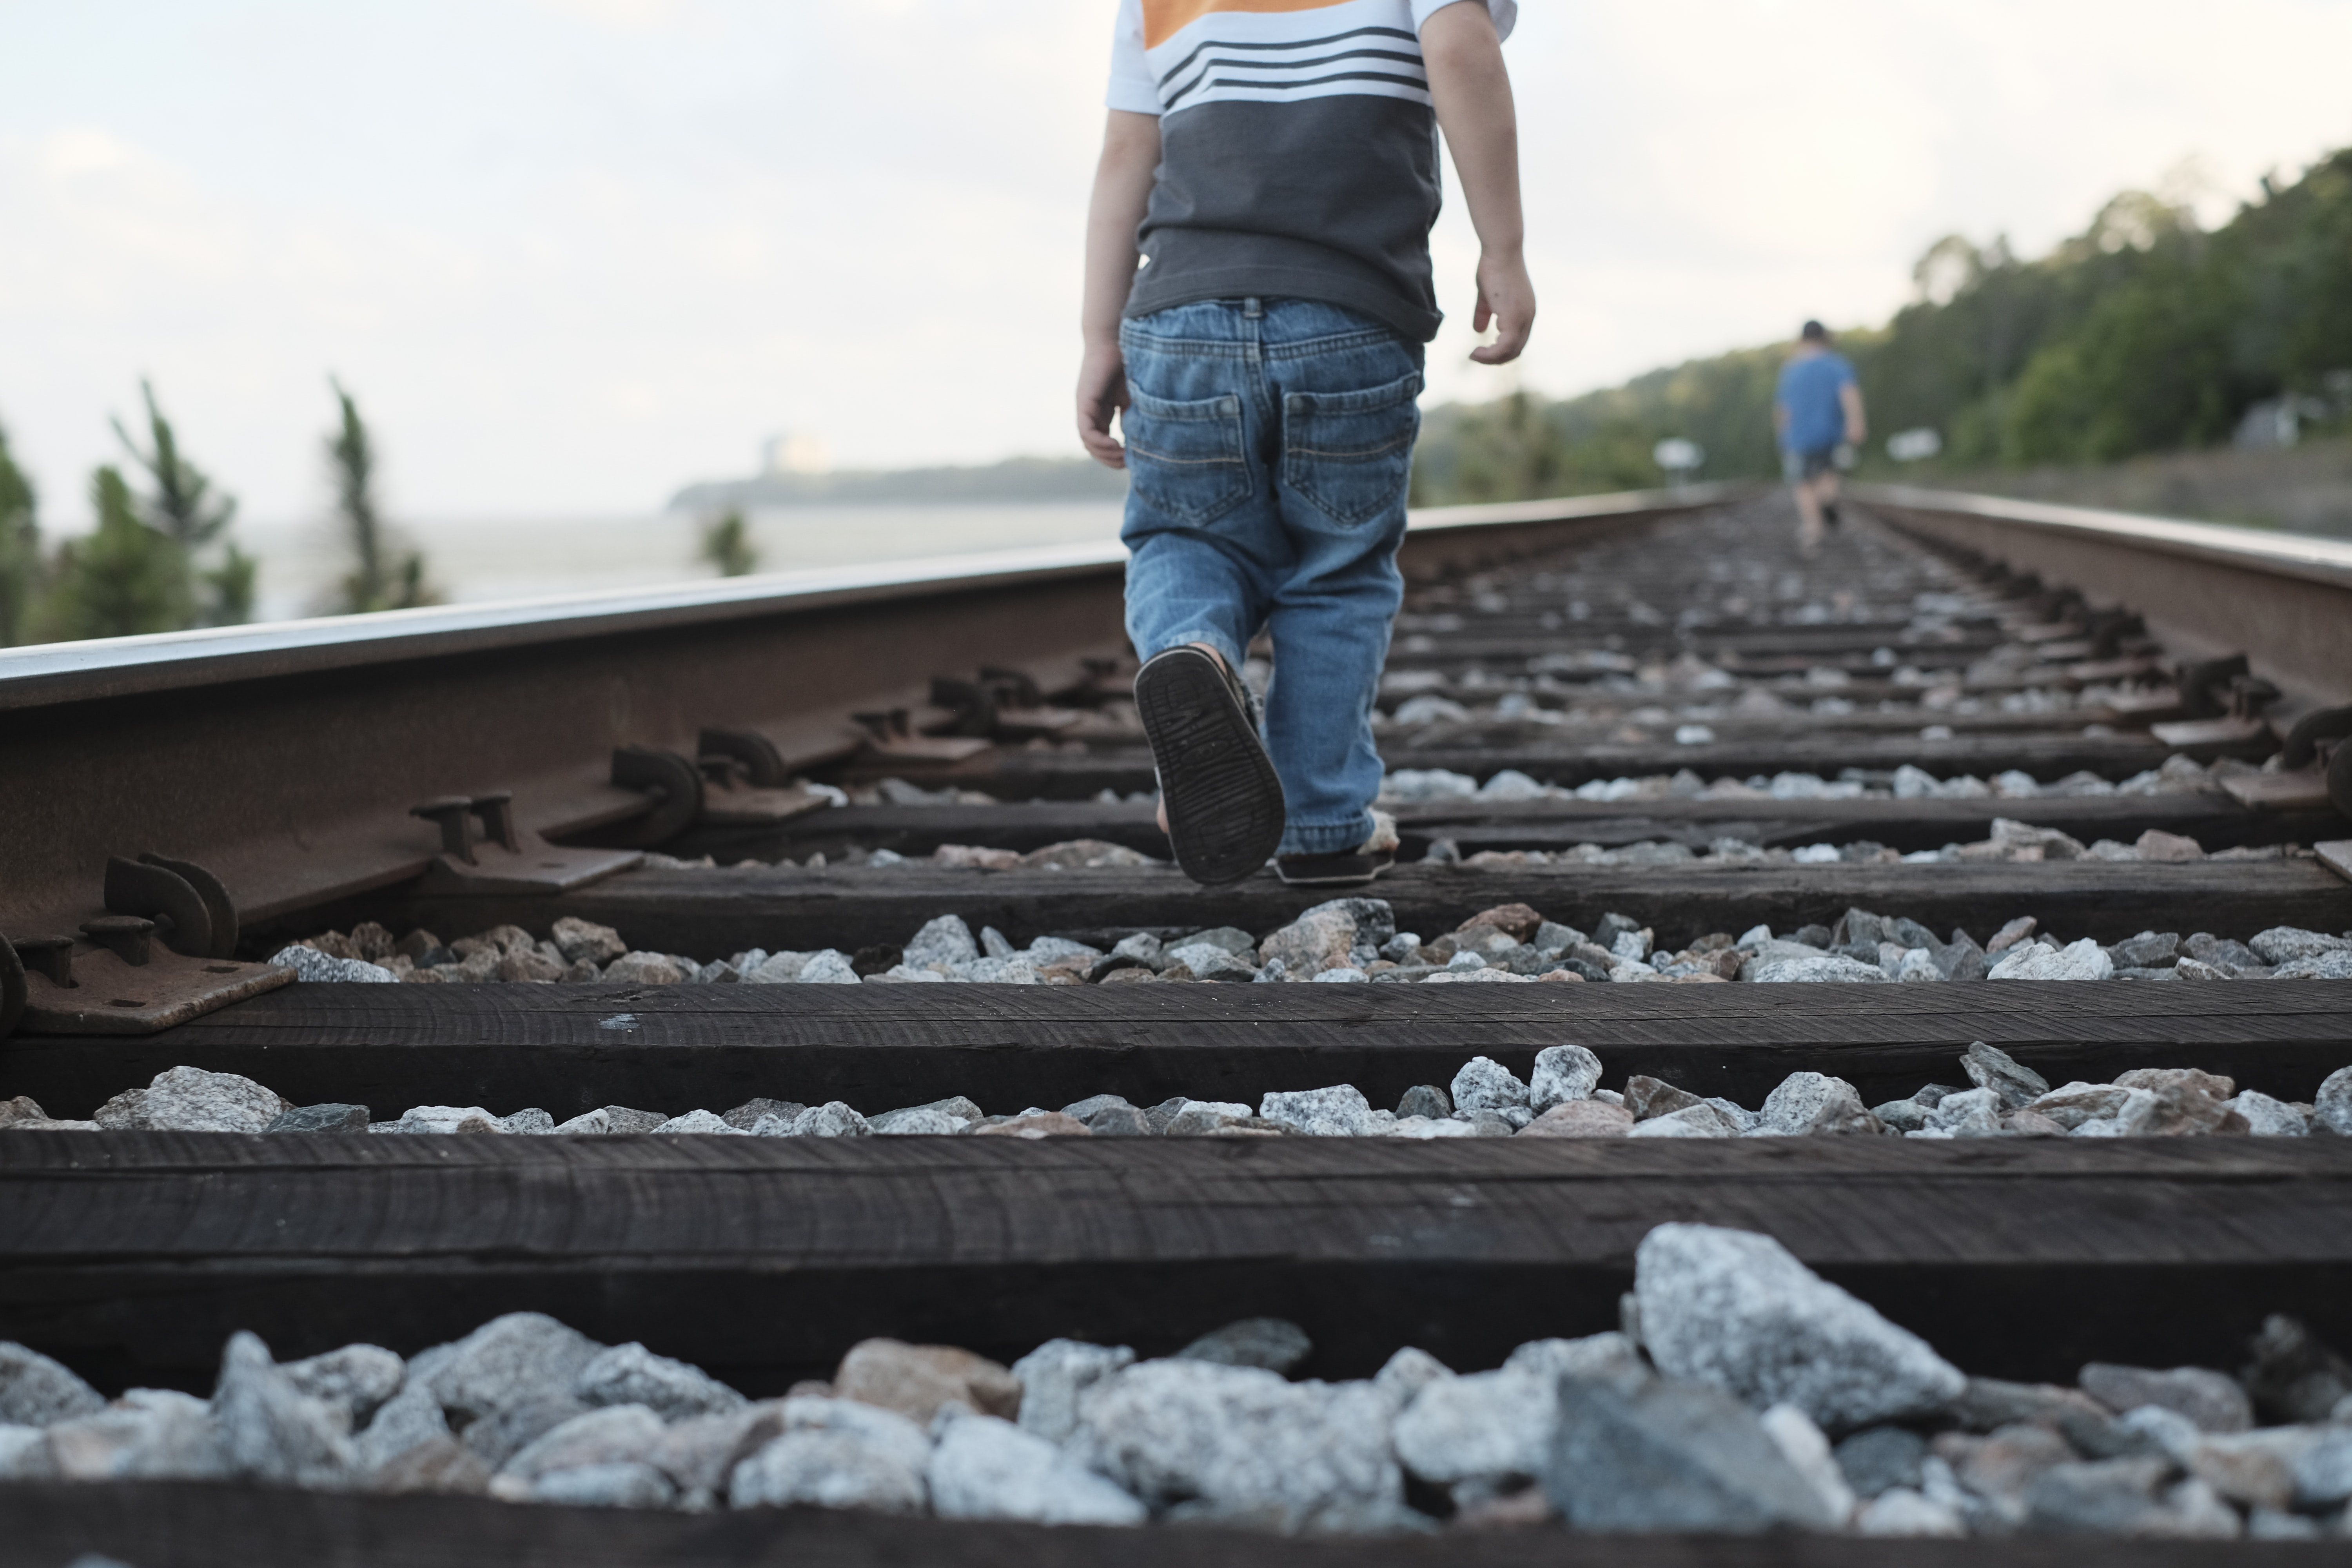 toddler walking on train rail during daytime